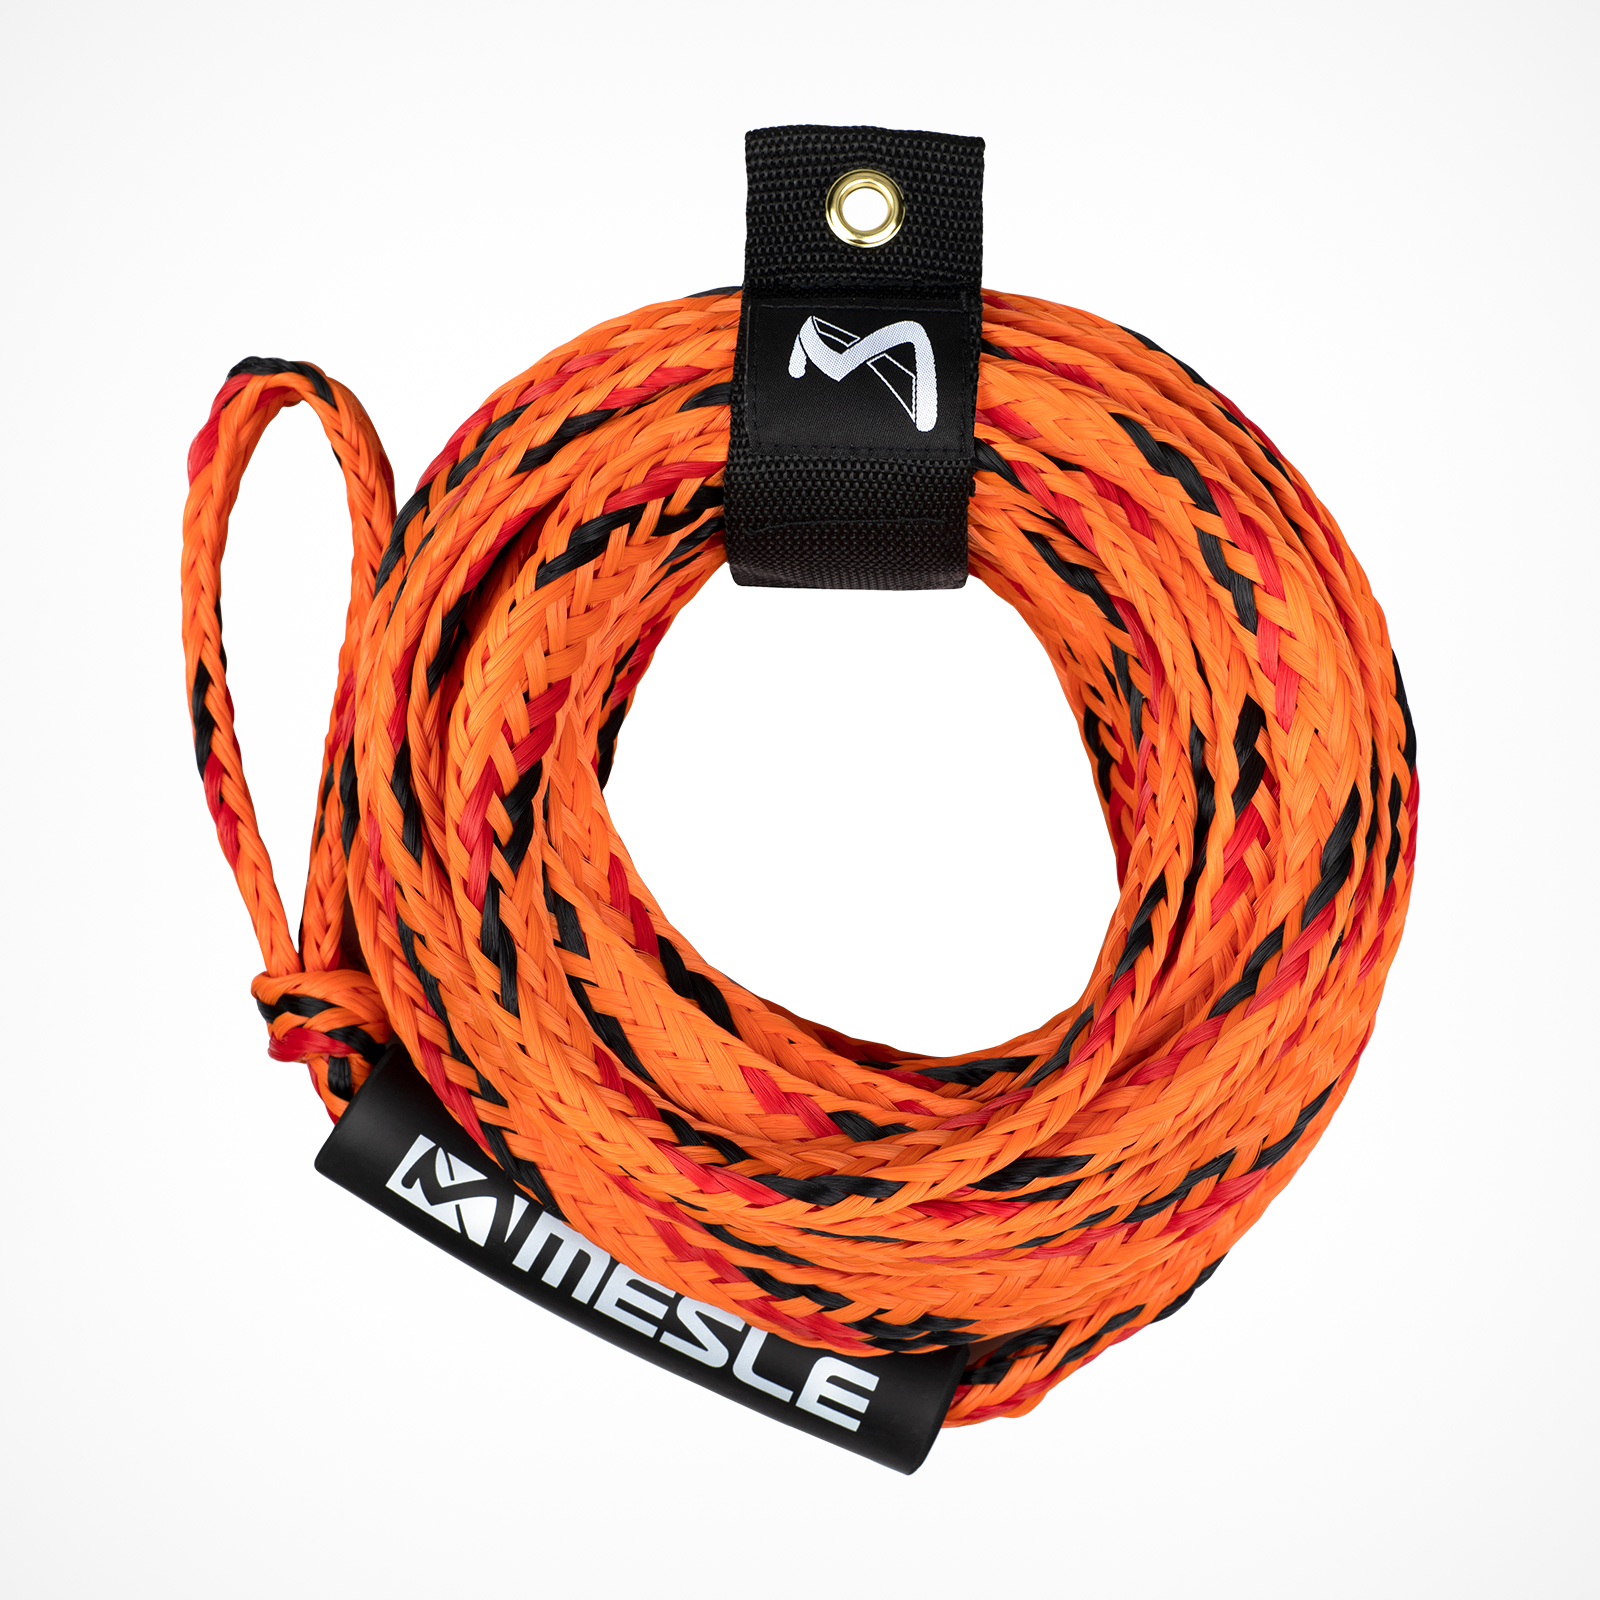 MESLE Tow Rope Pro 4P 60' for towable Water Sports Tubes in orange, floating and inclusive Rope Keeper